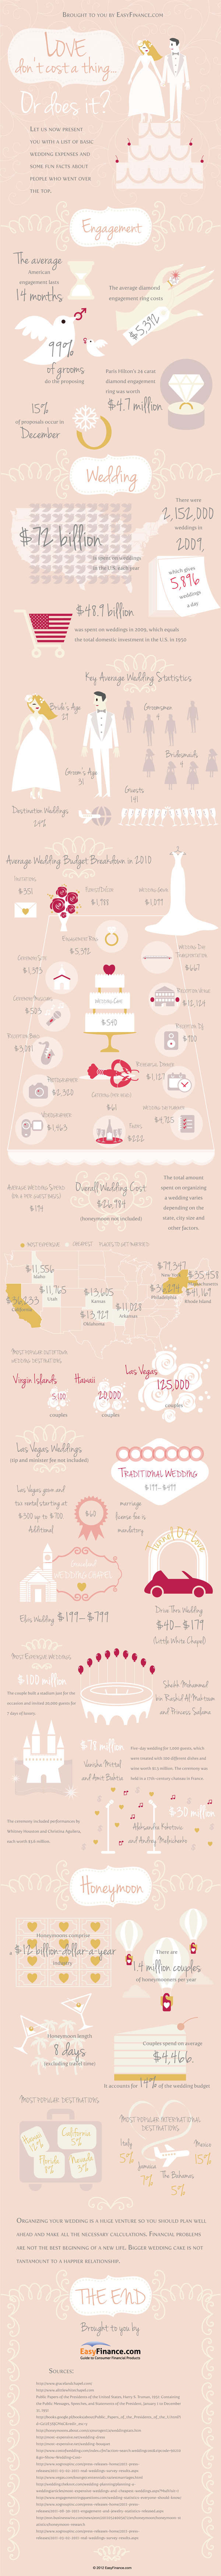 1342800409 in Wedding Budget Infographic from EasyFinance.com and blog